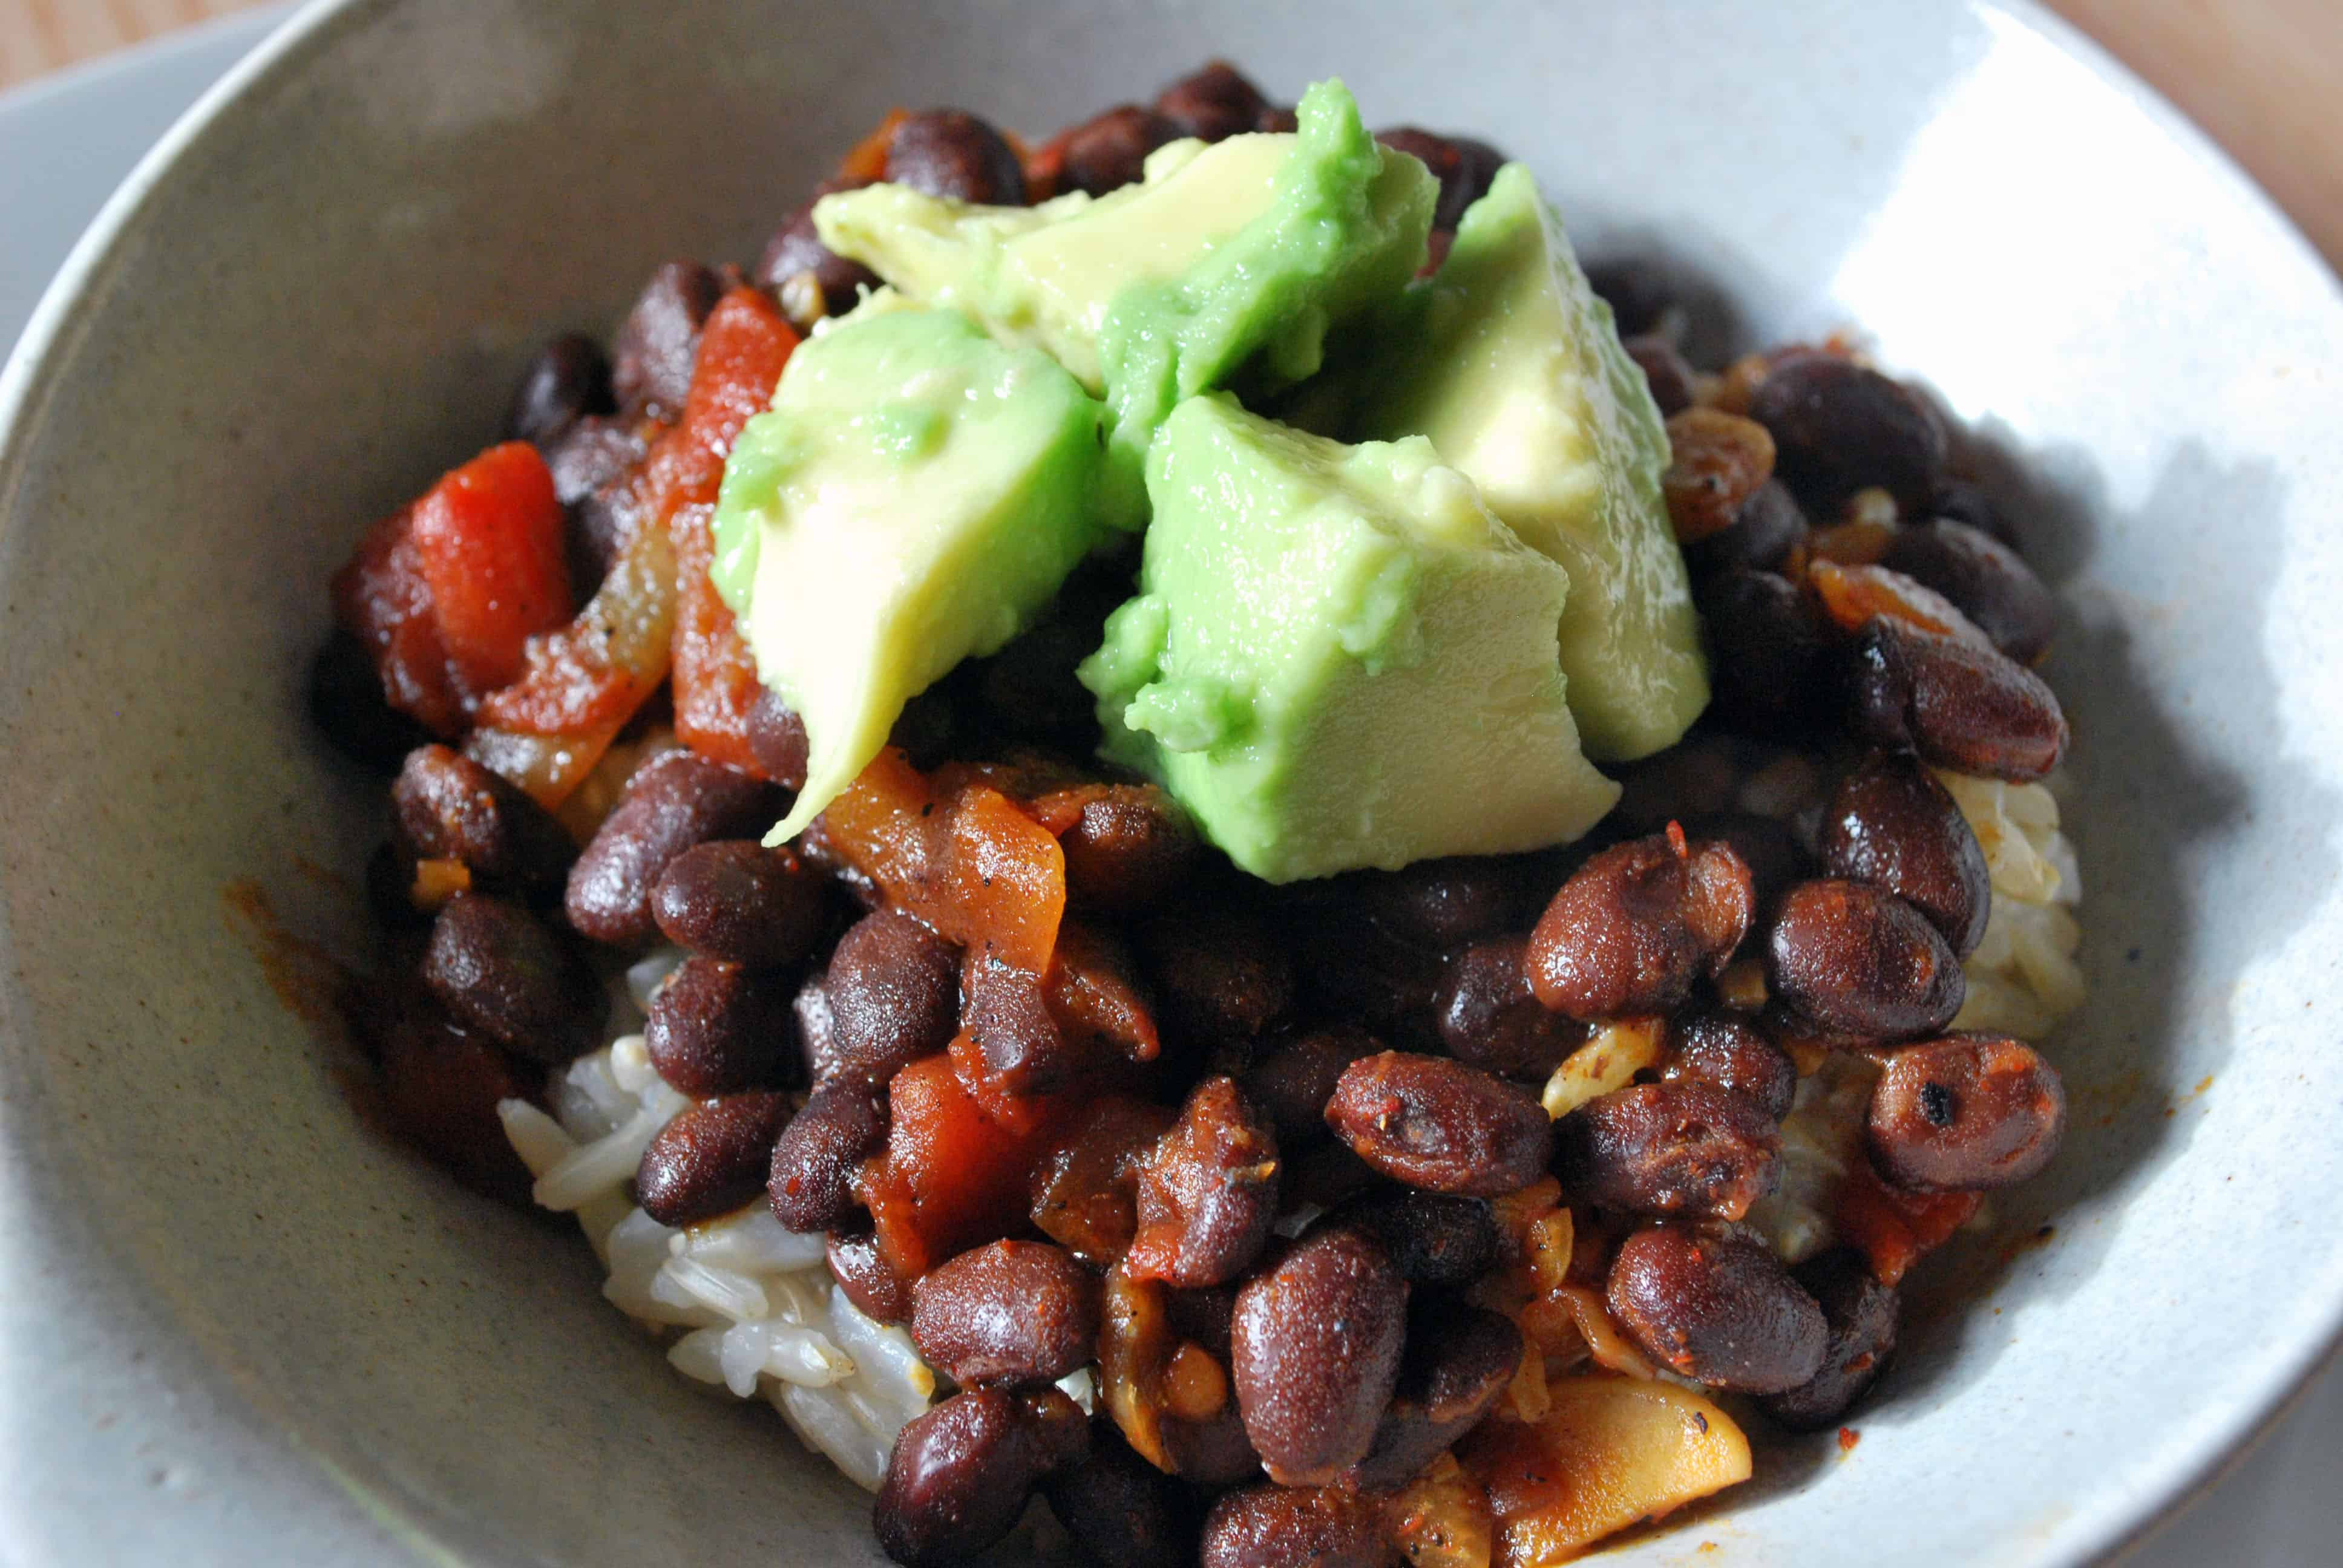 Beer-Glazed Black Beans with Avocado